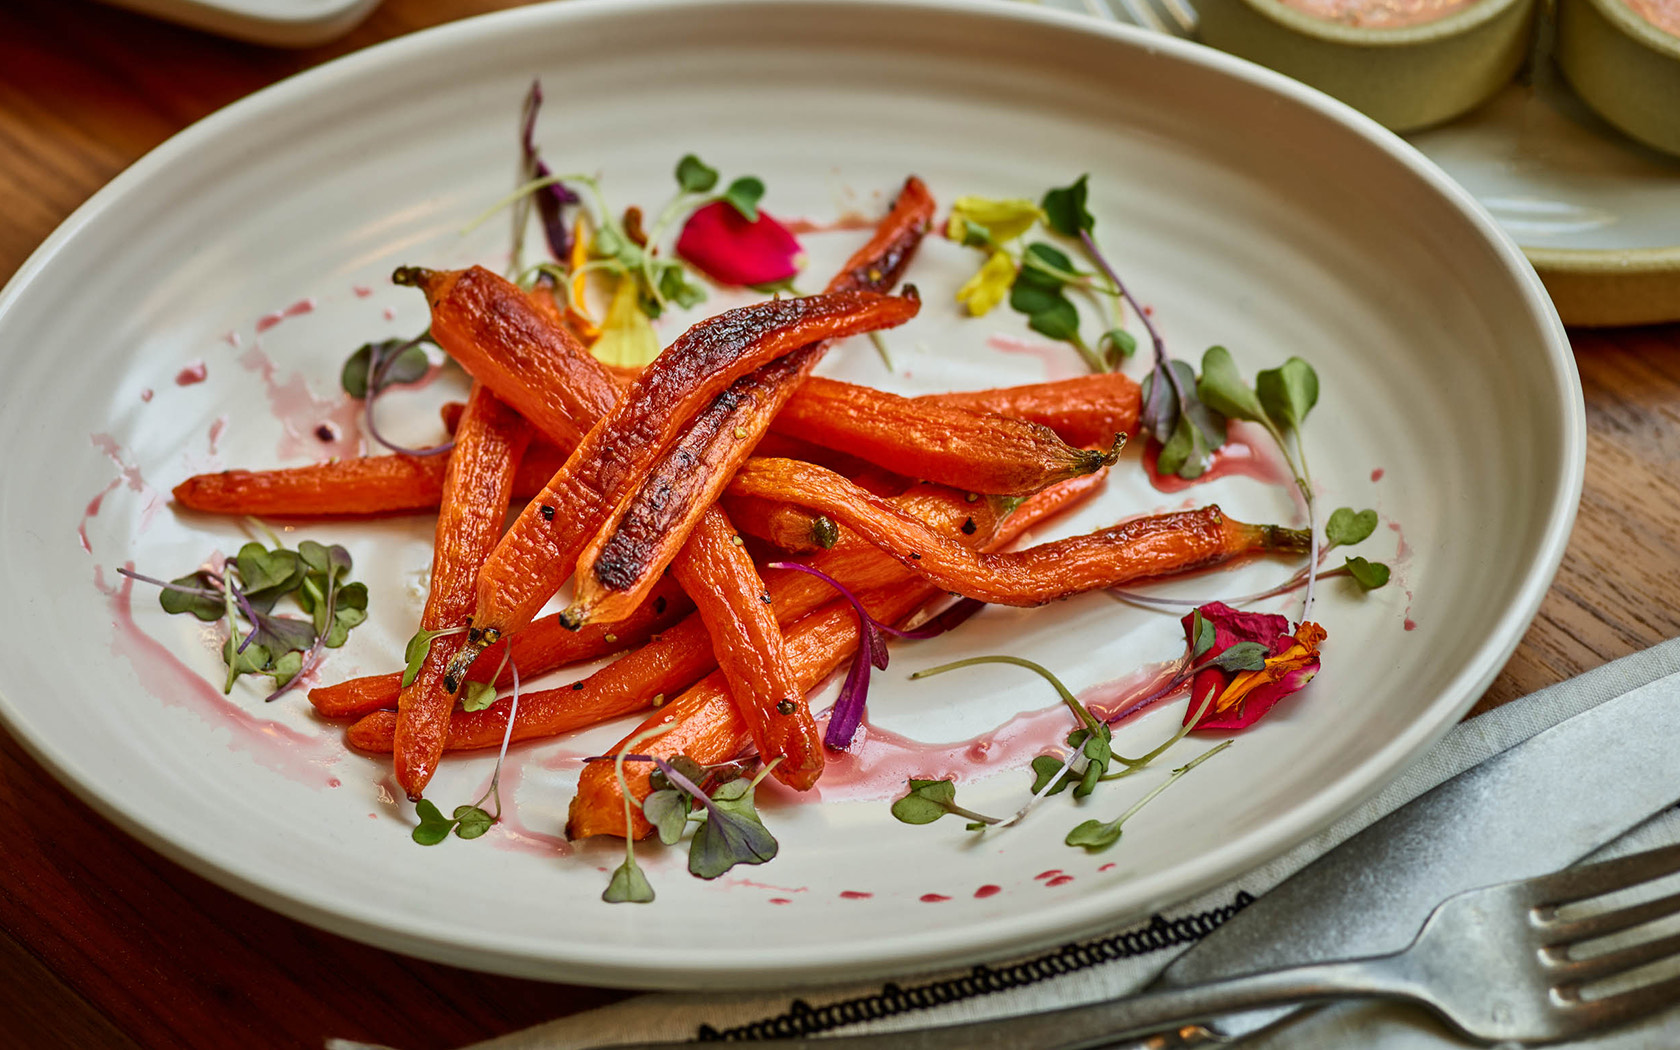 plate with roasted carrots and micro greens